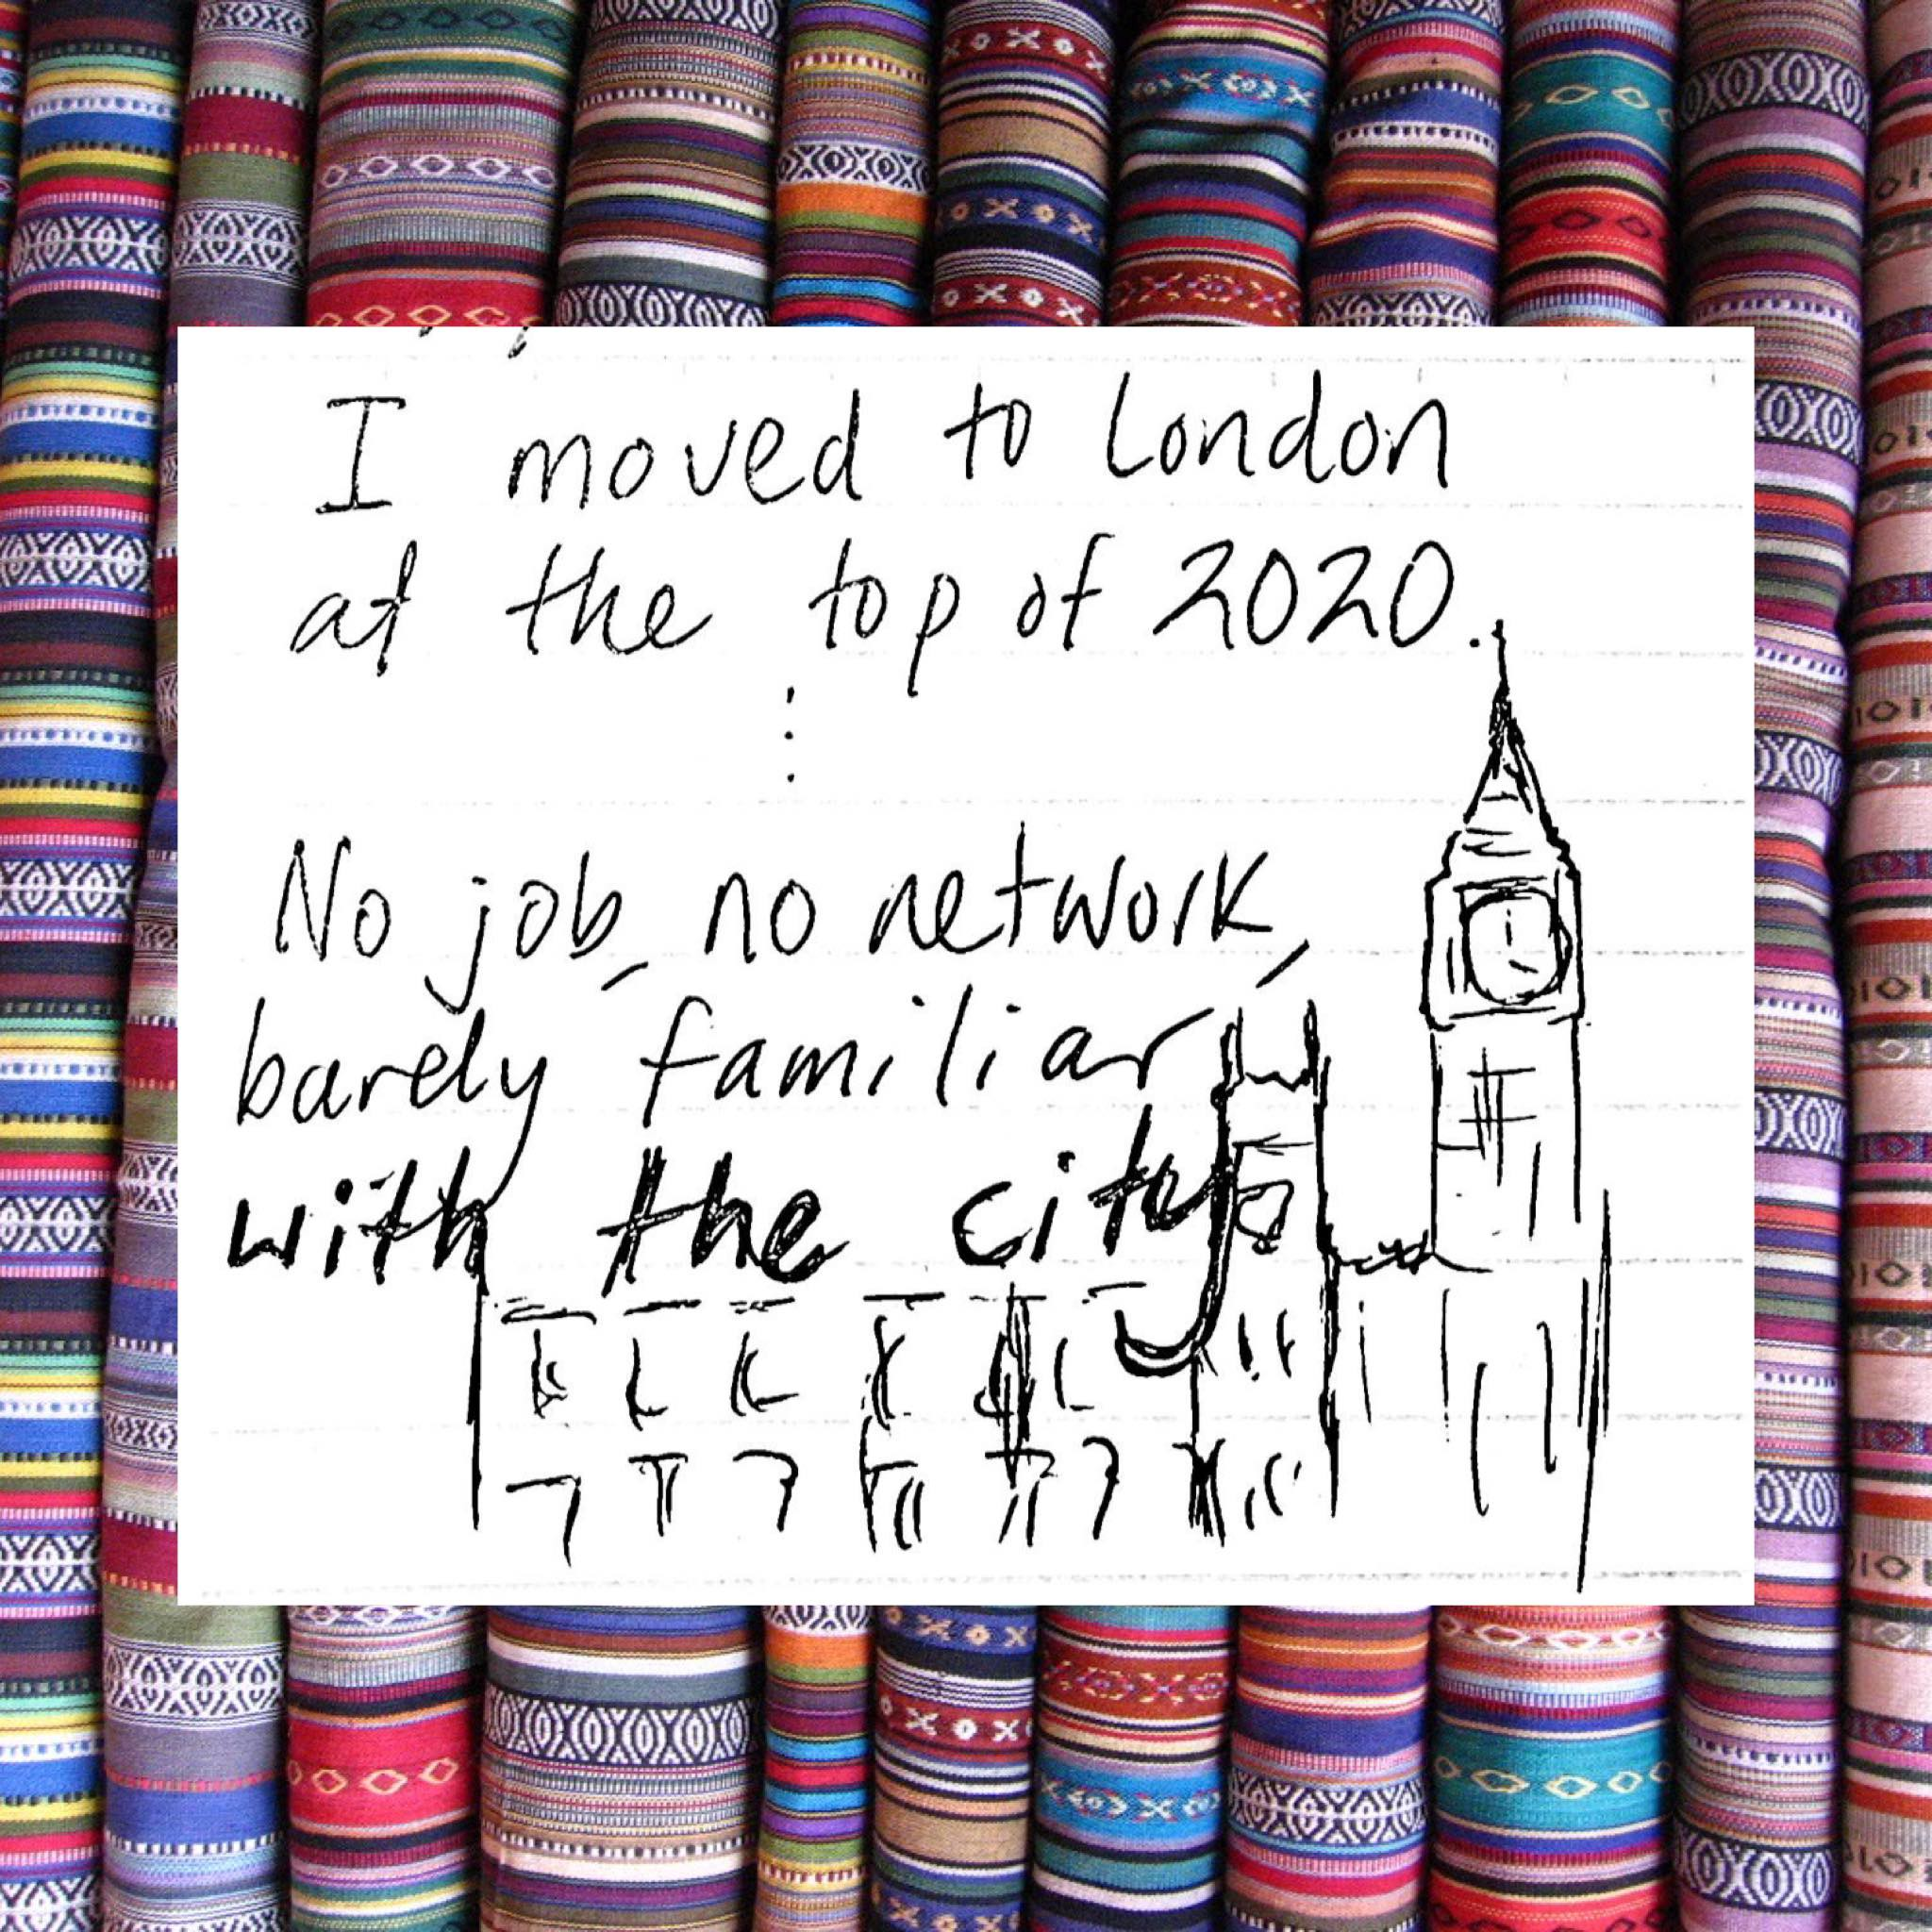 Same background has a white square with a sketch of Big Ben and handwritten text, read in the photo caption.